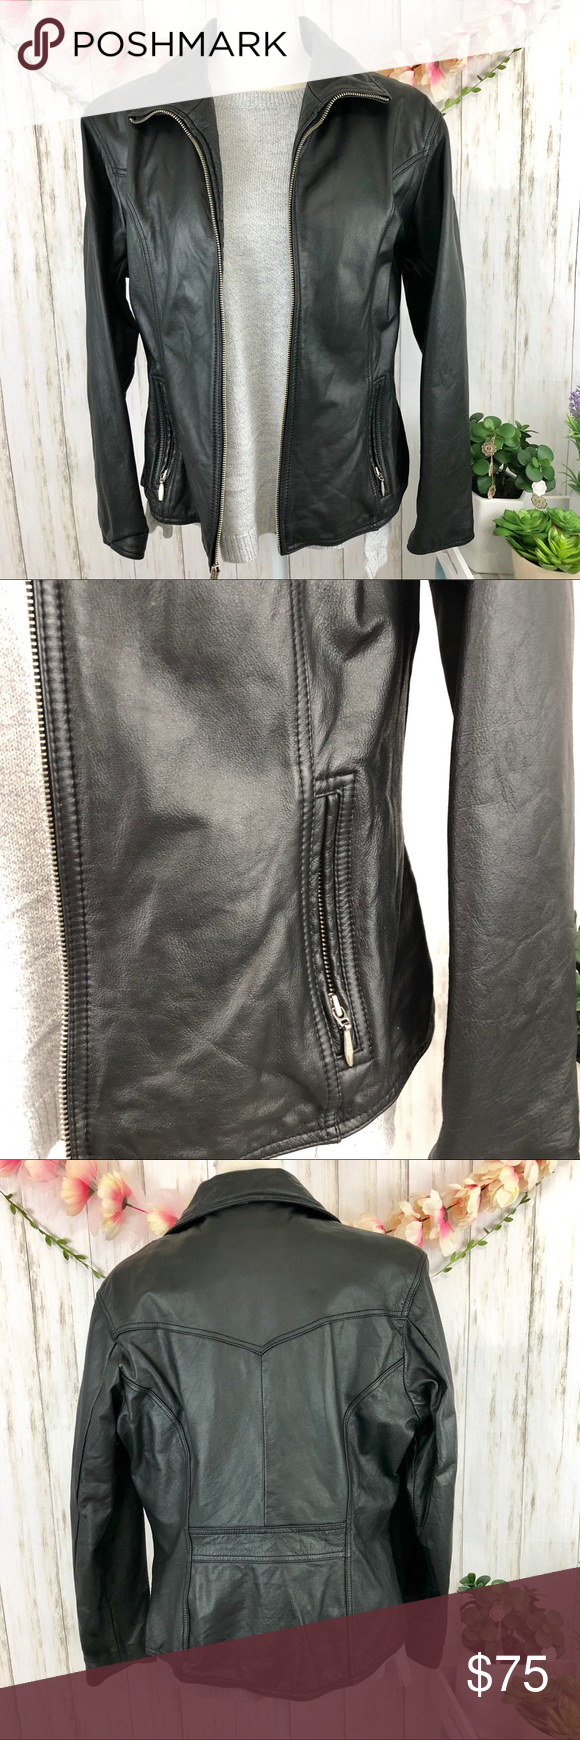 ‼SALE‼️WILSONS LEATHER Maxima Black Jacket WILSONS LEATHER